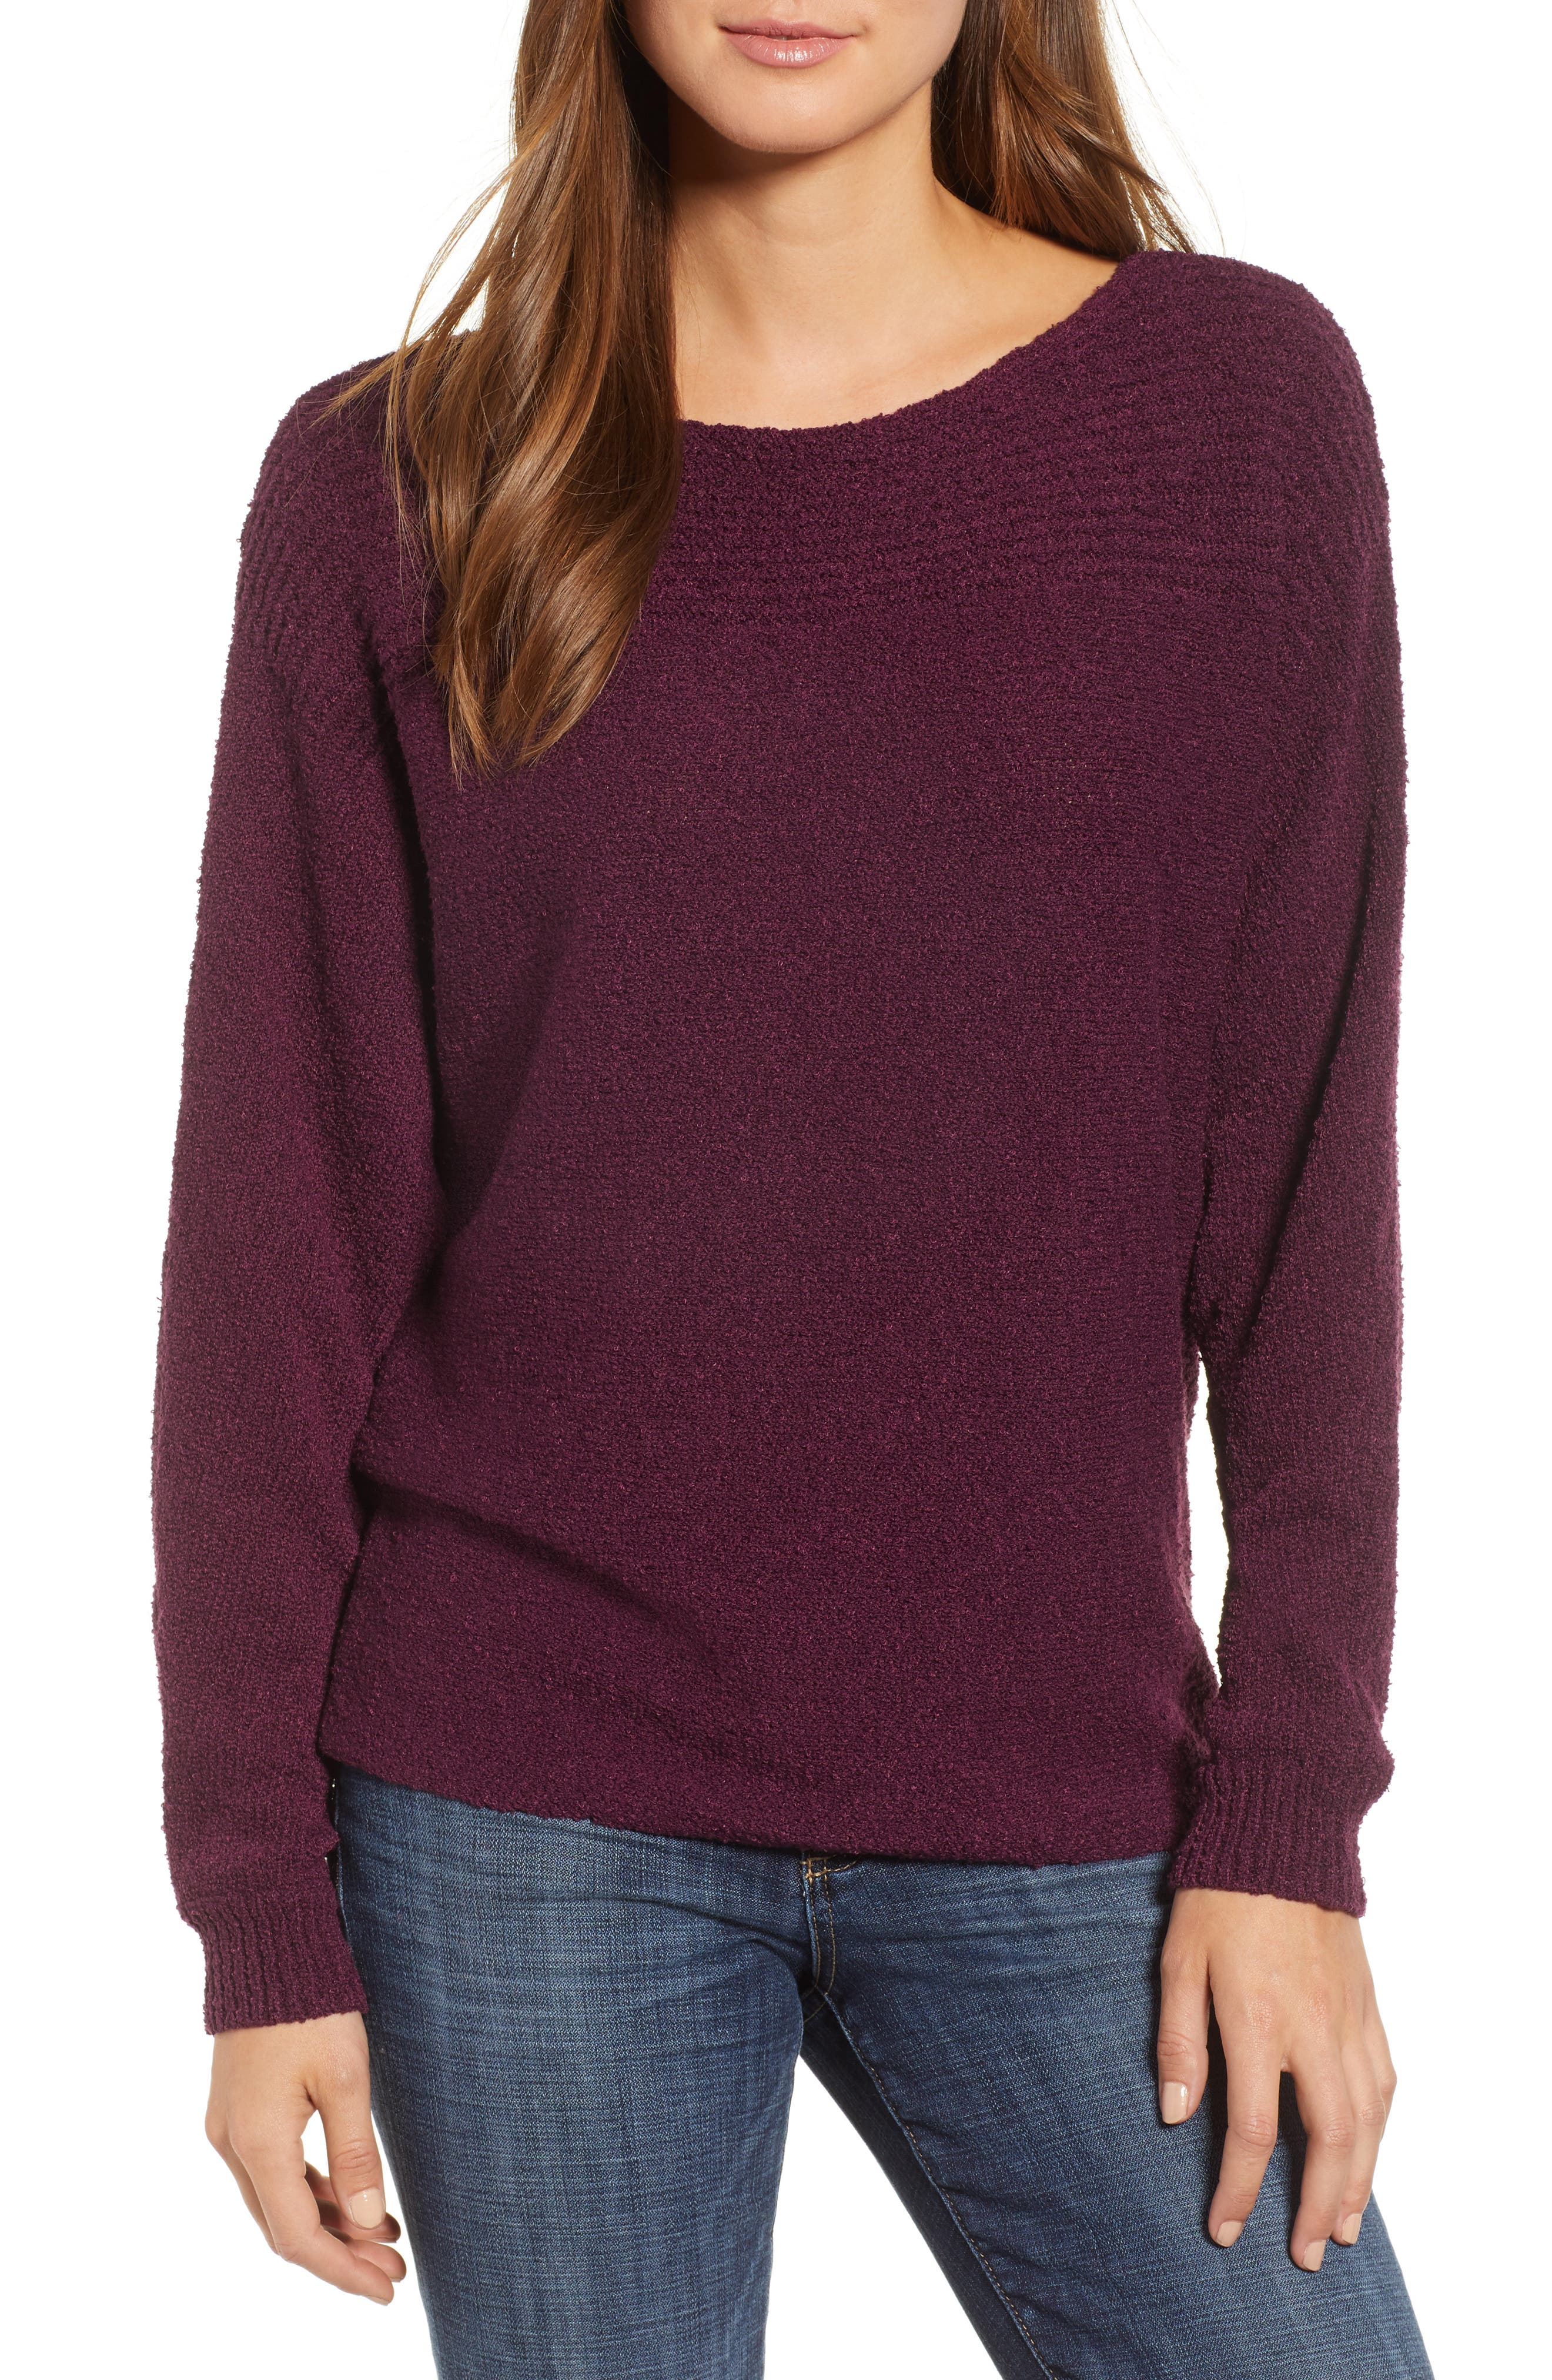 Calson<sup>®</sup> Dolman Sleeve Sweater,                             Main thumbnail 2, color,